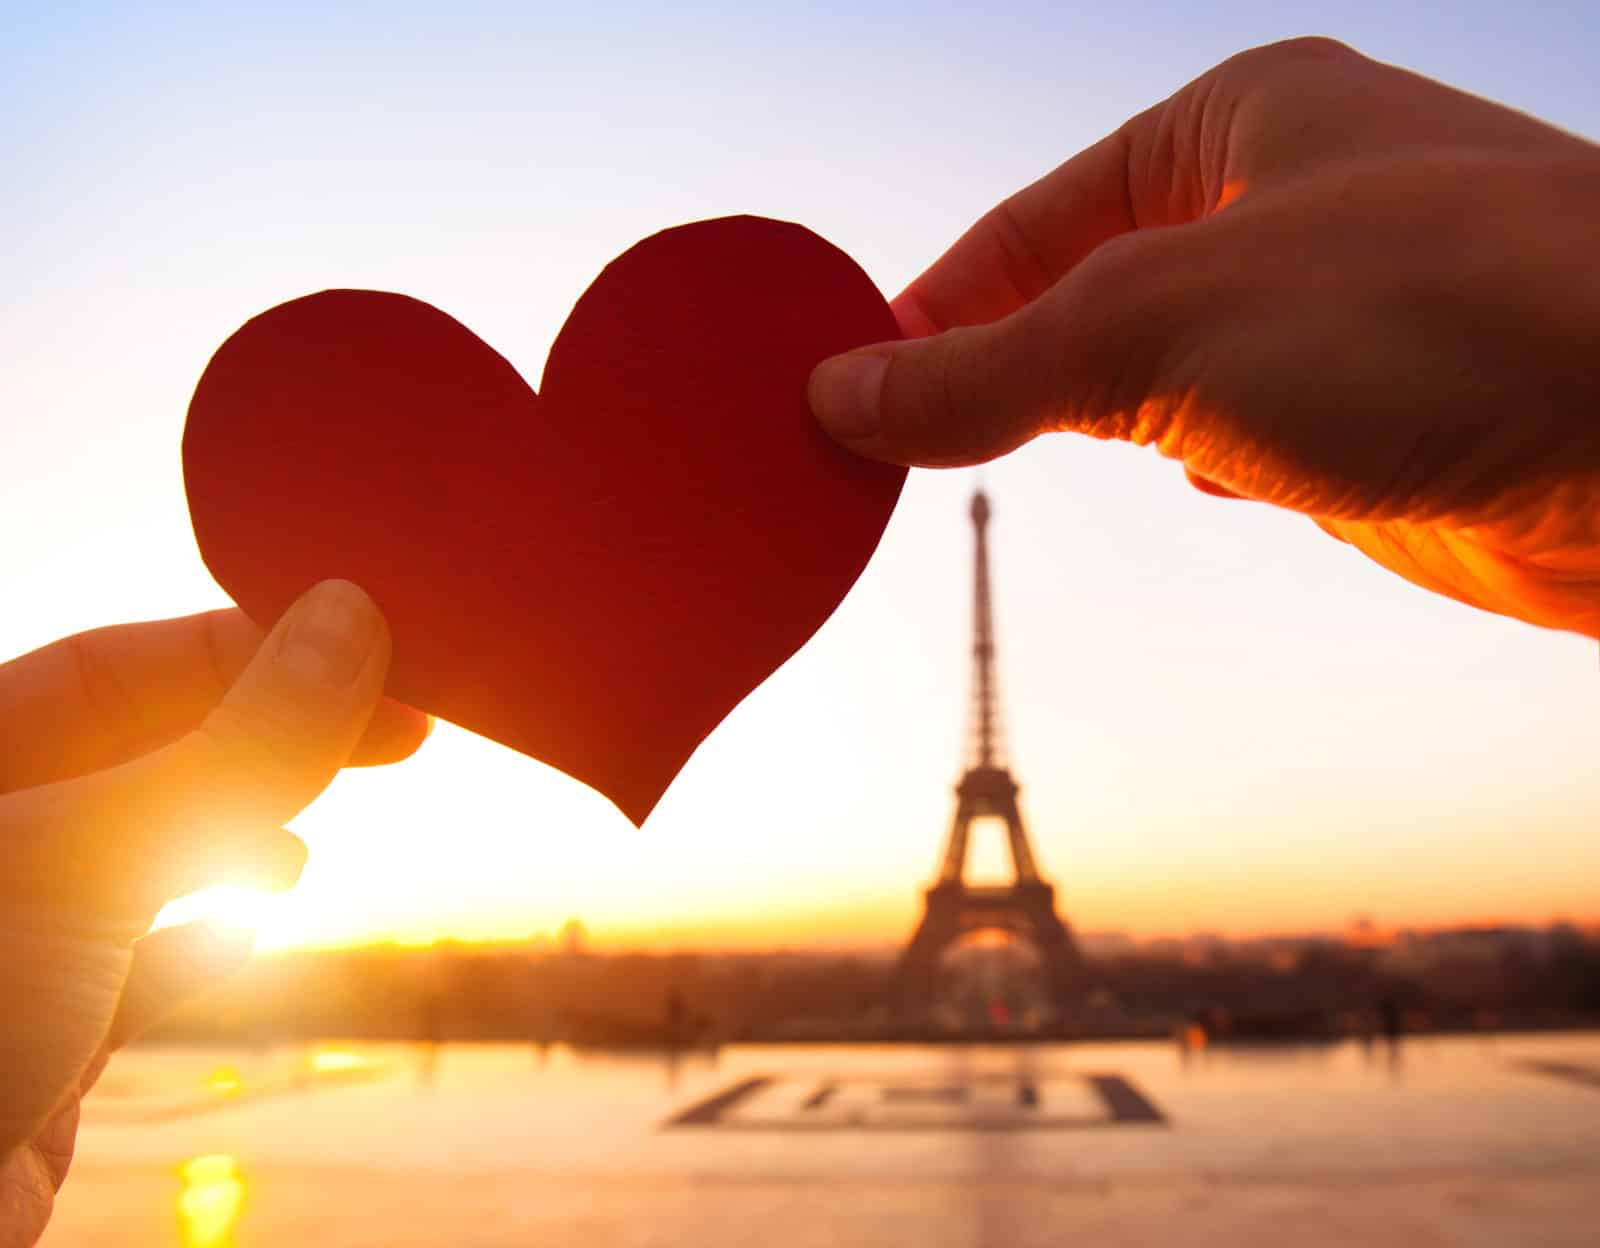 Christmas France French Today Valentine Day Photos Friends Valentine S Day Photoshoot Ideas Him Day France French Today Joyeuse Saint Valentin Day photos Valentines Day Photos